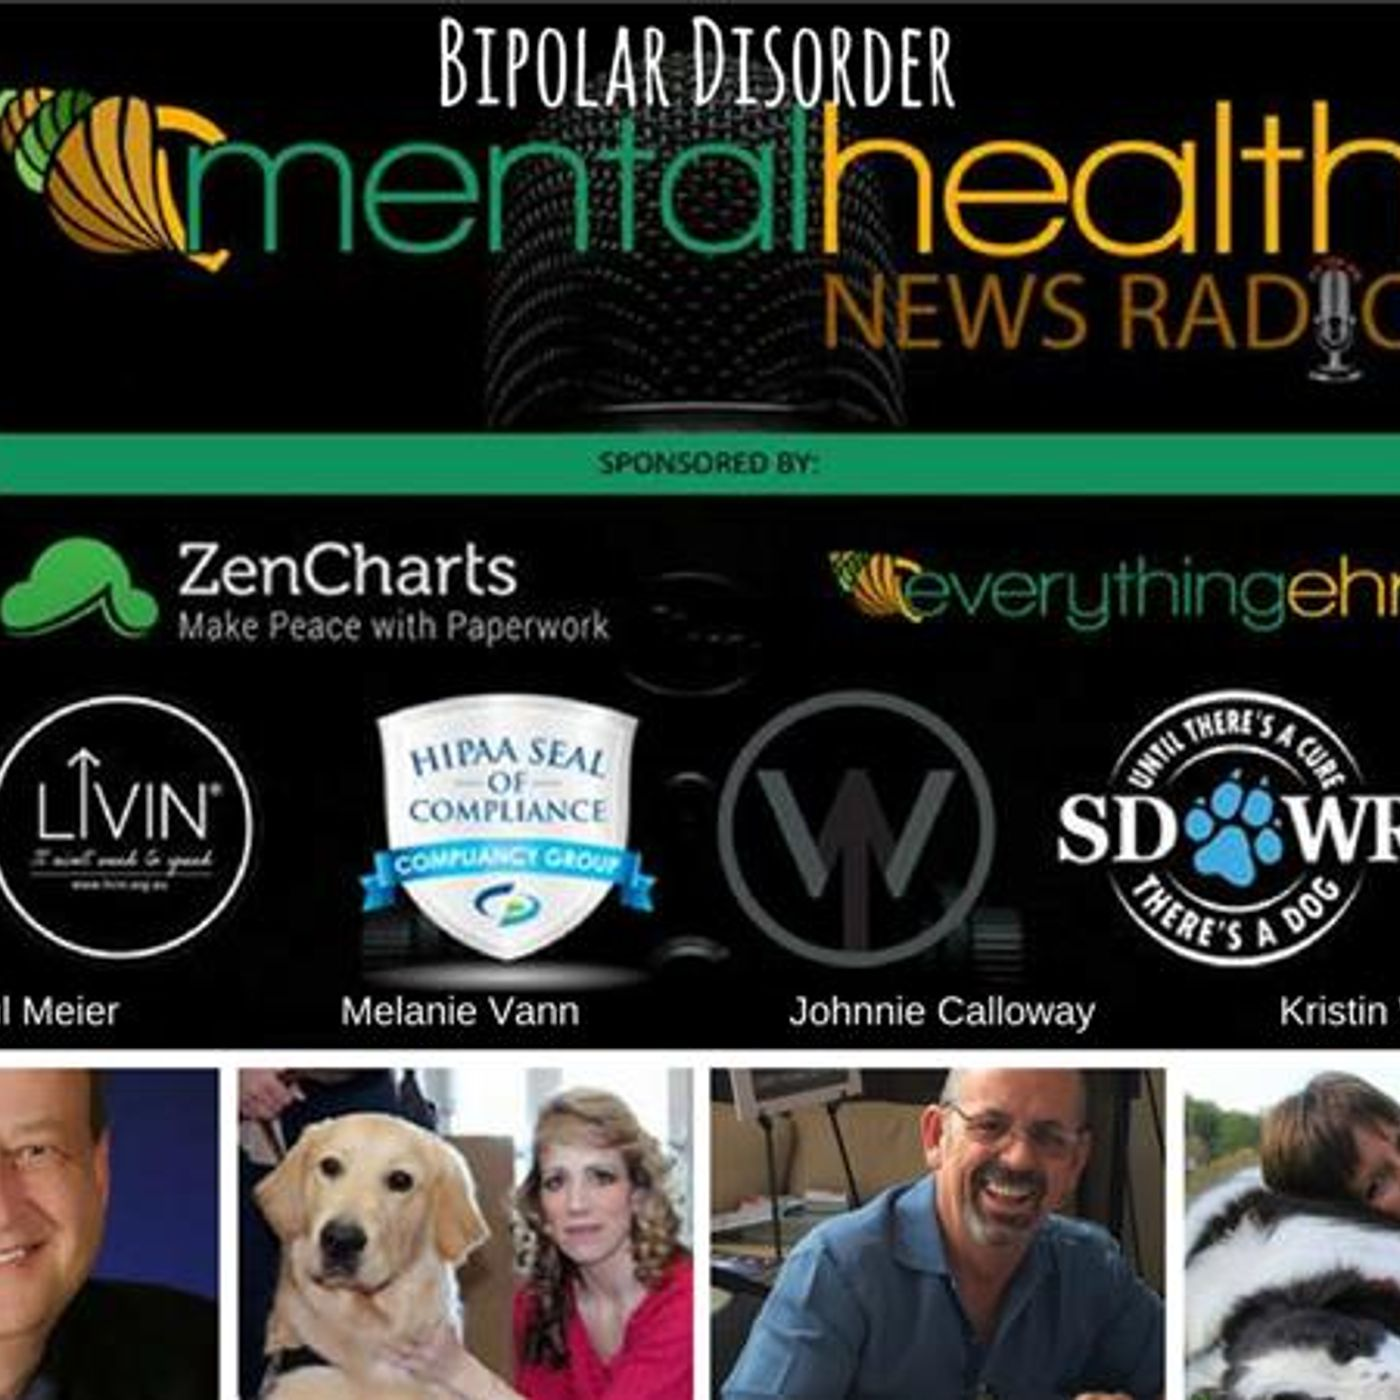 Mental Health News Radio - Round Table Discussions with Dr. Paul Meier: Bipolar Disorder